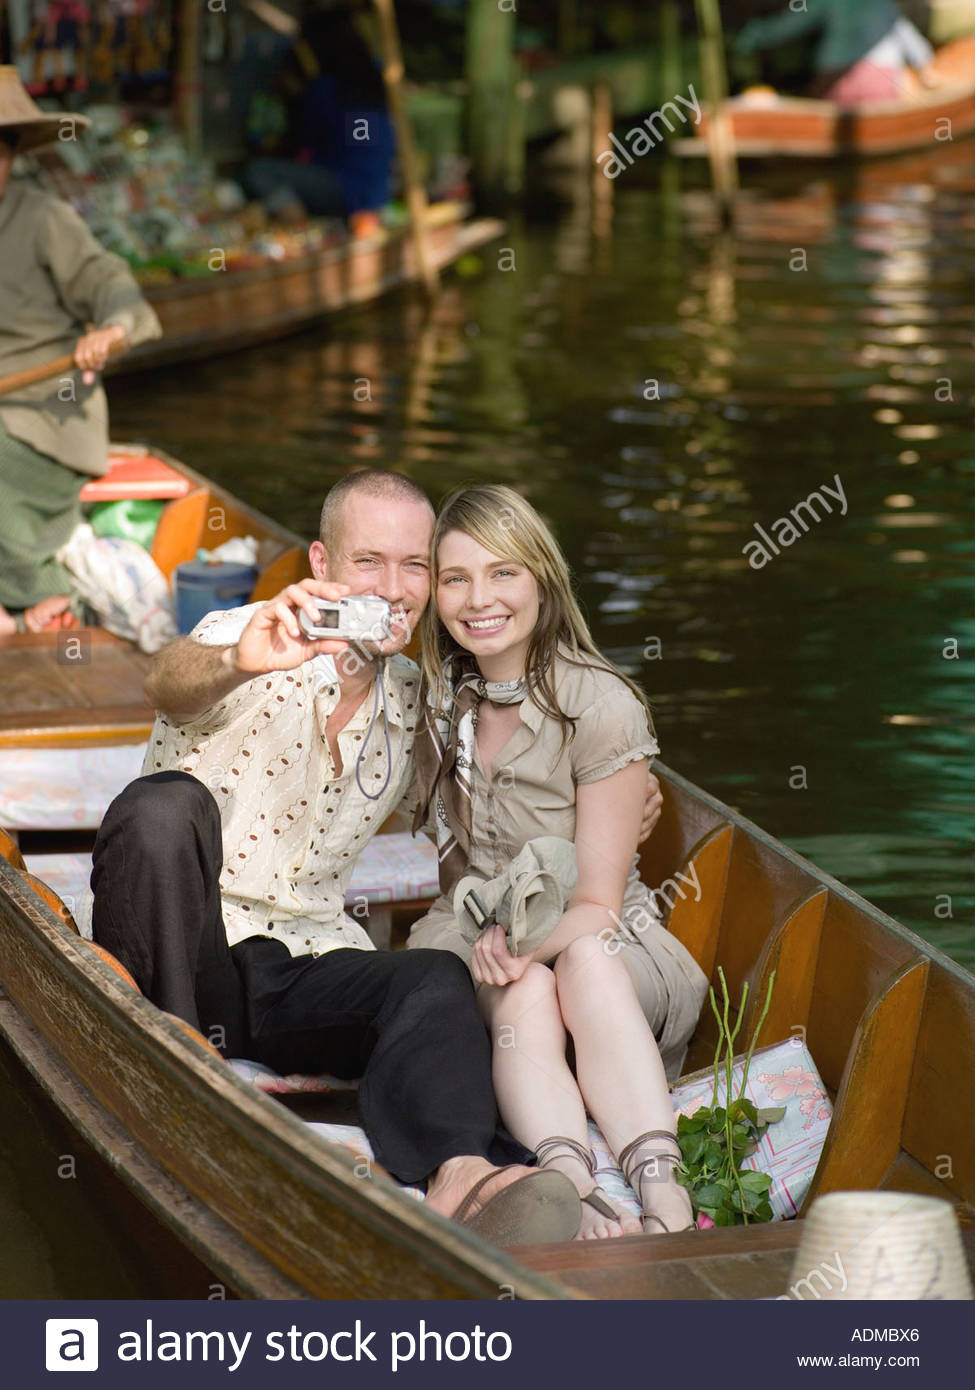 Couple taking a picture in a row boat - Stock Image